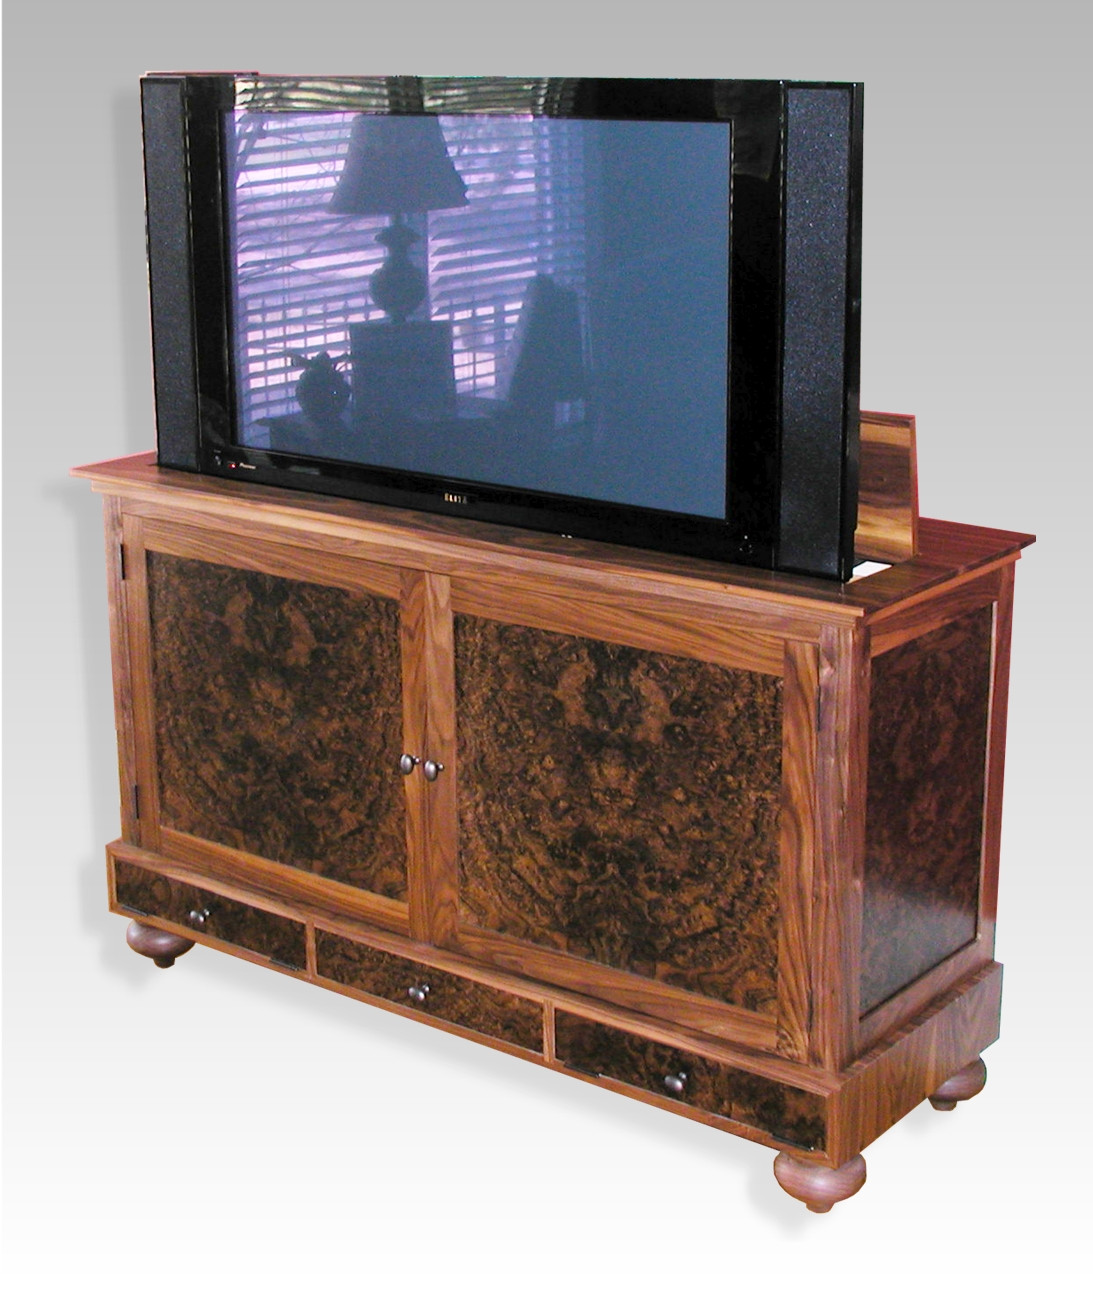 Best ideas about Hidden Tv Cabinet . Save or Pin Amazing Tv Cabinets With Lifts 7 Hidden Tv Cabinet With Now.